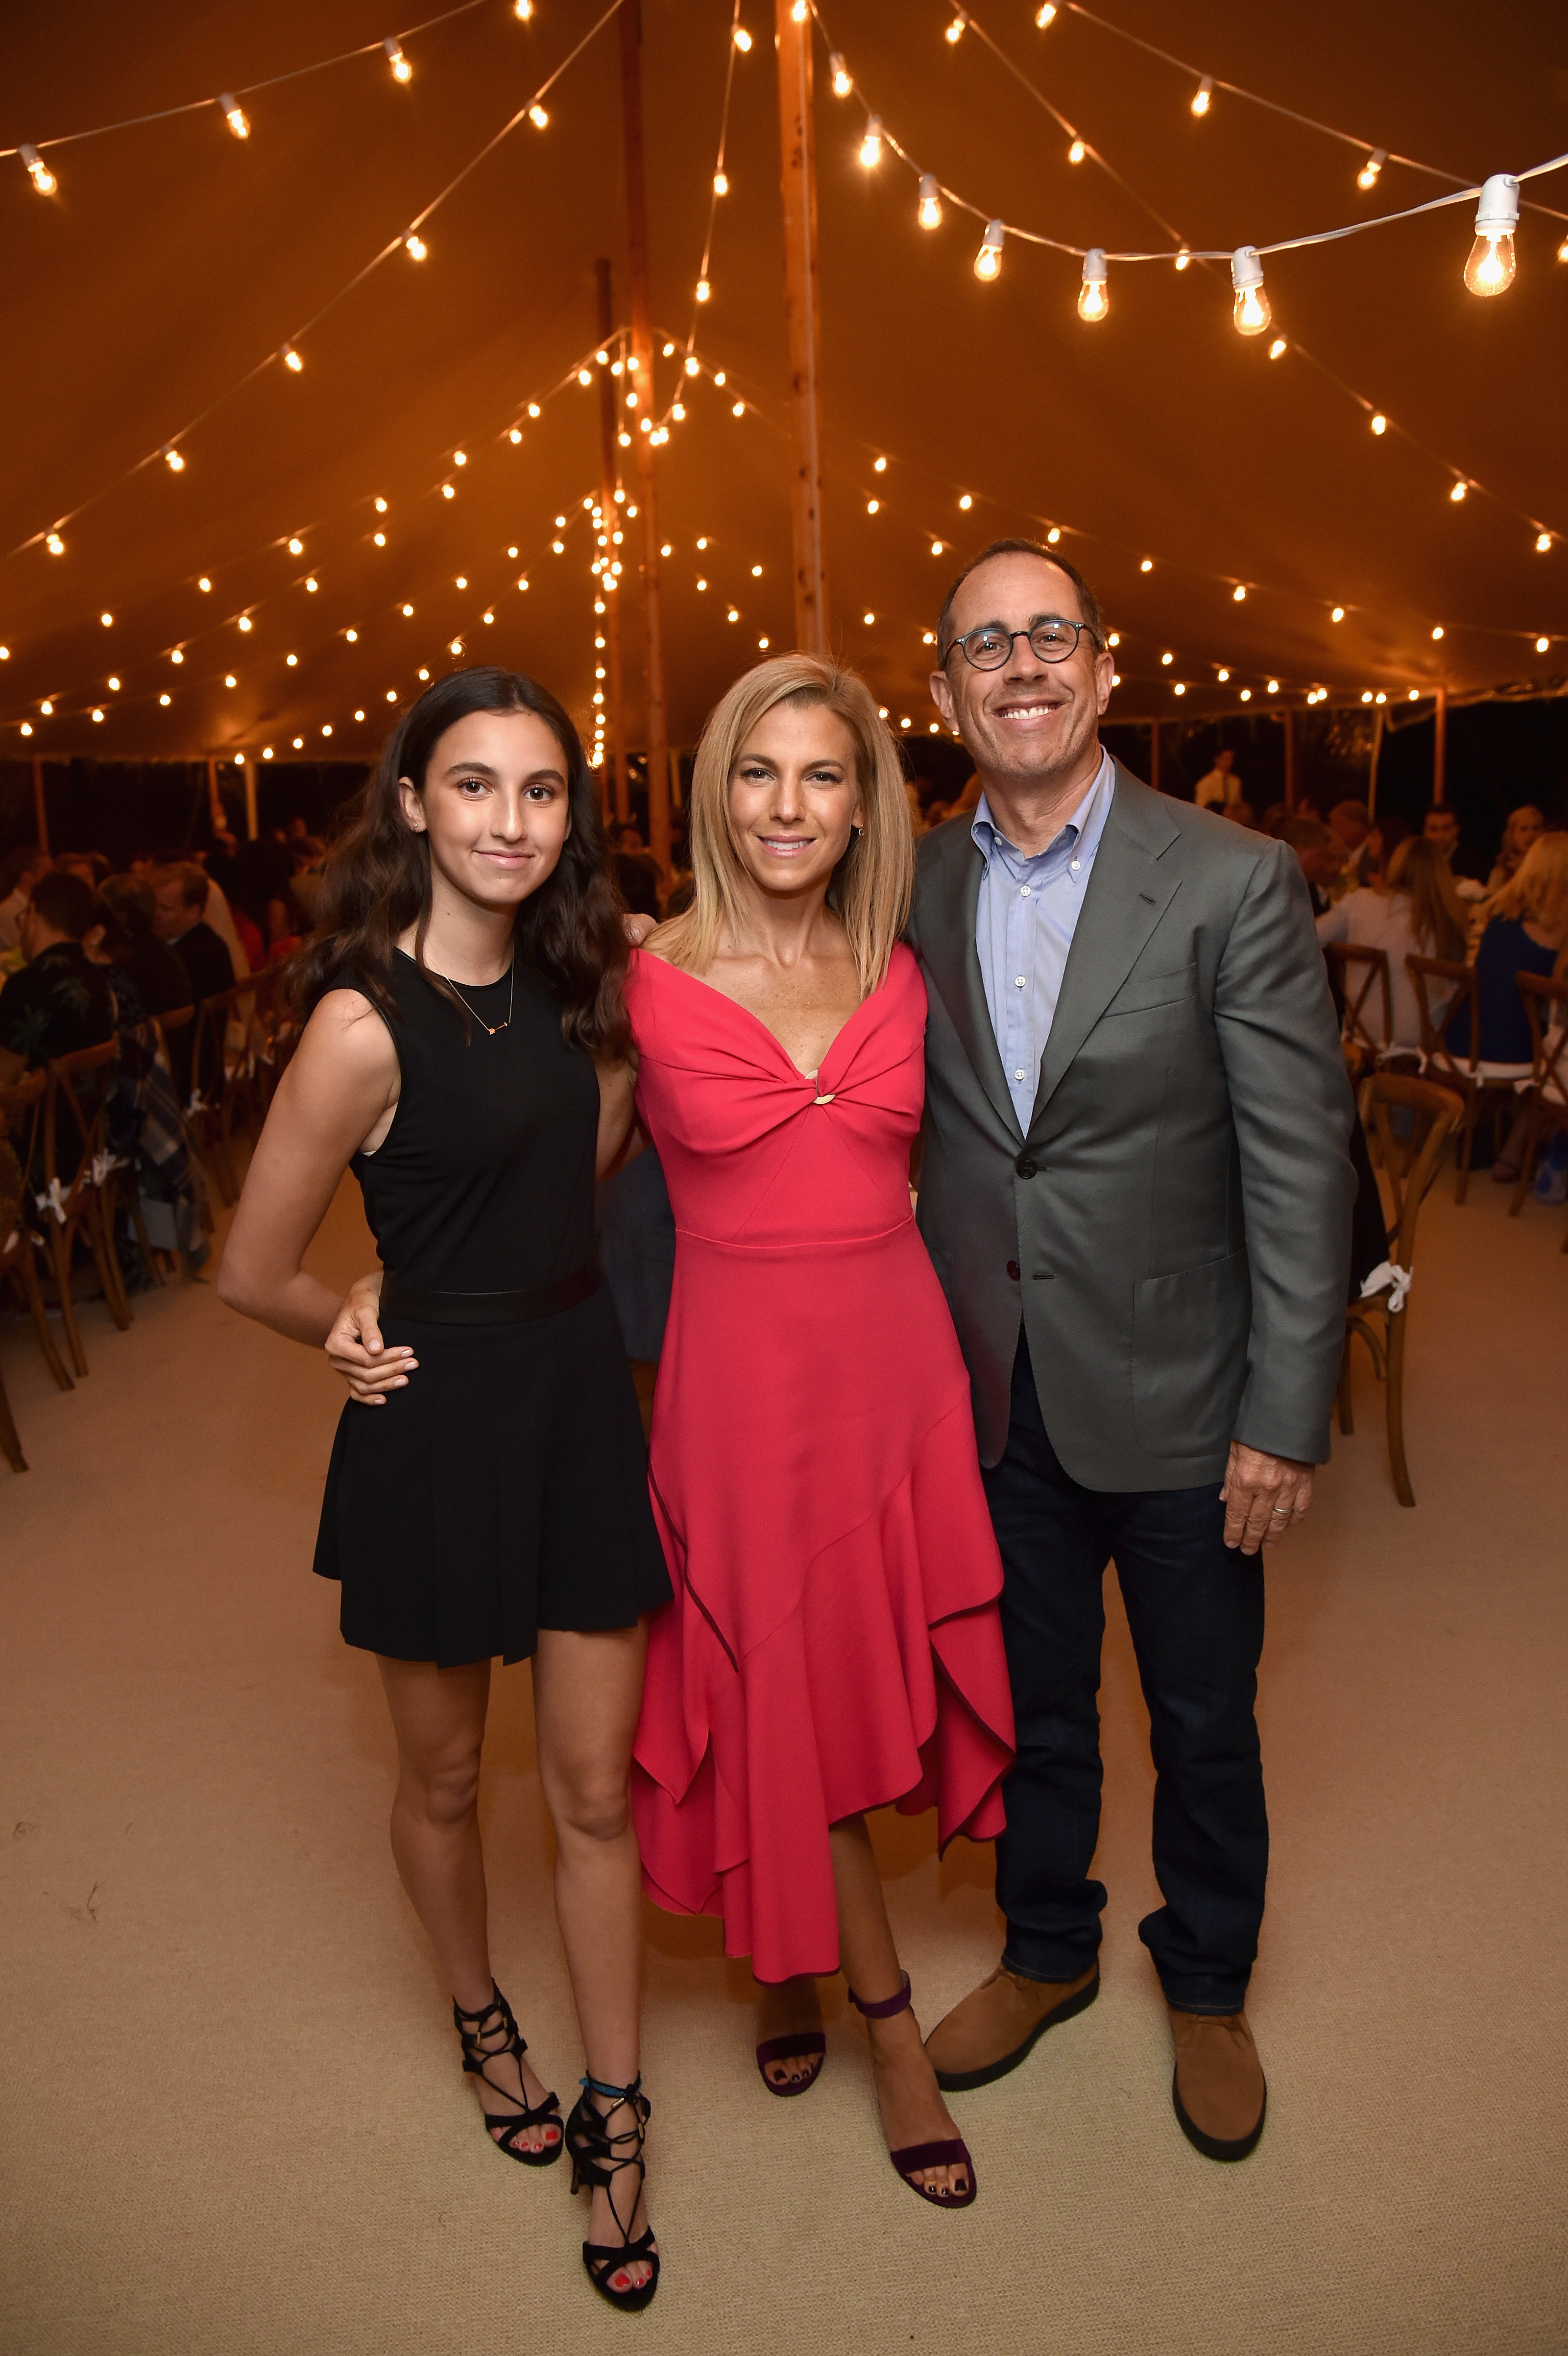 "<p>In our memories television's Seinfeld was the perennial single but at a Net-a-porter event comedian Jerry Seinfeld showed that married life continues to suit him, sitting alongside his 16-year-old daughter Sascha.</p> <p>The fresh-faced, petite brunette didn't have to travel far with the party held in conjunction with the foundation GOOD+, which was created by Jerry's wife of 20 years, Jessica Seinfeld, held at the family's Hamptons estate.</p> <p>For two weeks Net-a-porter has arranged a pick-up service for the premium customers in the US to donate children's books and clothing.<br> ""Are there any women here who have heard of Net-a-port-er?"" Jerry deadpanned to crowd according to <a href=""http://wwd.com/eye/parties/jessica-seinfeld-dinner-net-a-porter-good-east-hampton-10954071/"" target=""_blank"" draggable=""false"">WWD</a>.<br> The event turned into a nostalgic television reunion with Suddenly Susan's Brooke Shields, Sabrina the Teenage Witch's Melissa Joan Hart and My Girls's Anna Chlumsky supporting the stylish cause.</p> <p> </p>"